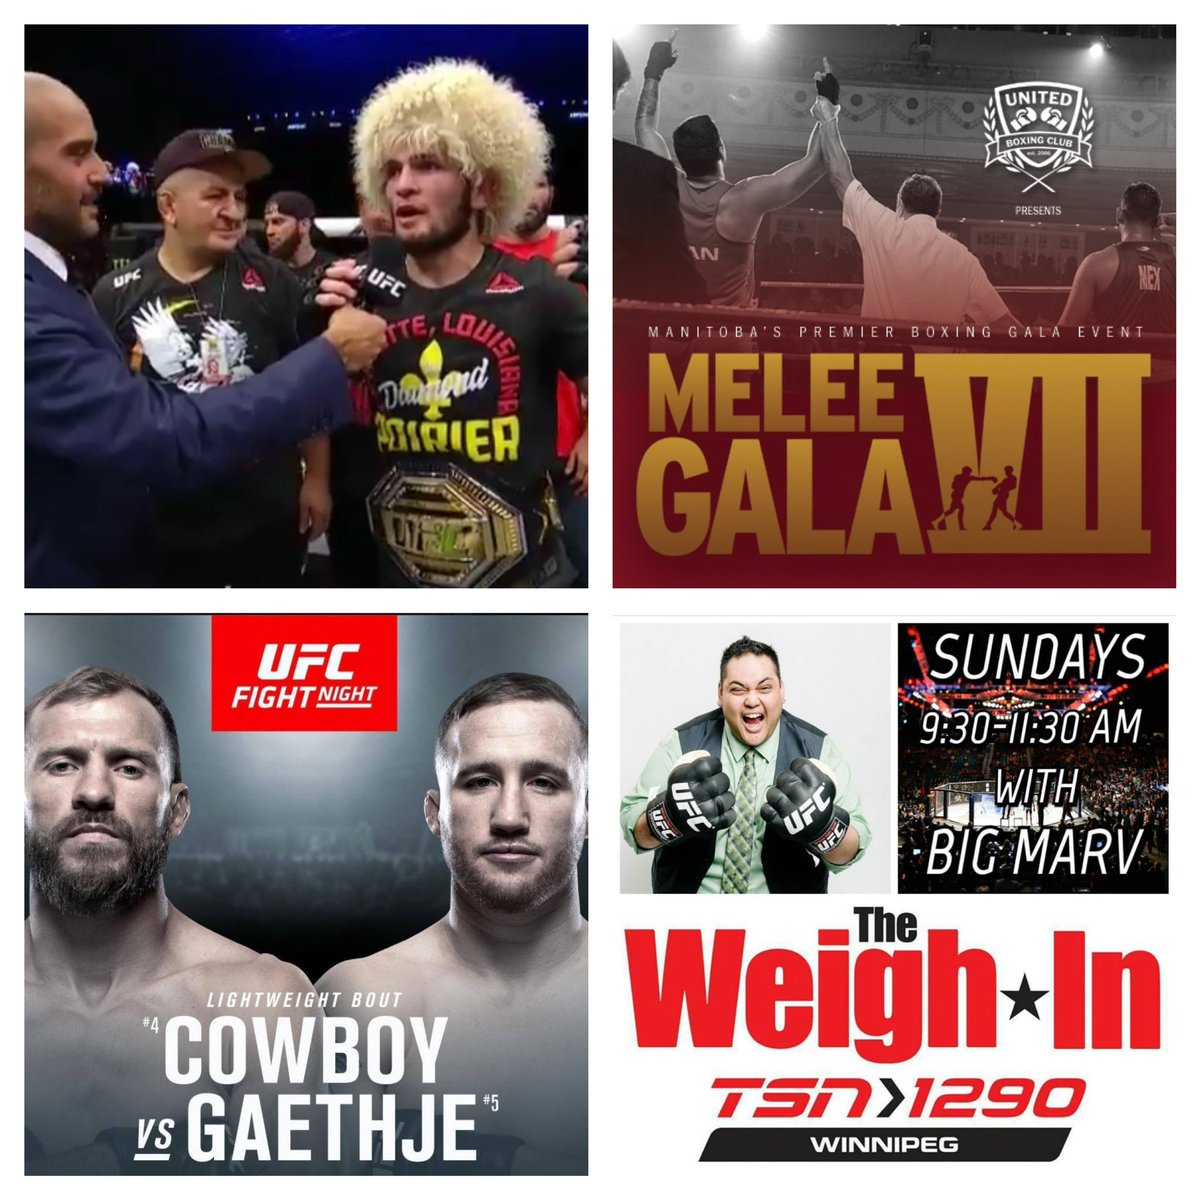 We're BACK tomorrow! -covering all from #UFC240 to #UFC242.   -United Boxing Winnipeg will be in to talk #MeleeGalaVII  -preview of #UFCVancouver!   @Windog0101 from #IceTimeSports joins @BigMarv204   TOMORROW at 9:30am CT on @TSN1290Radio & #iHeartRadio